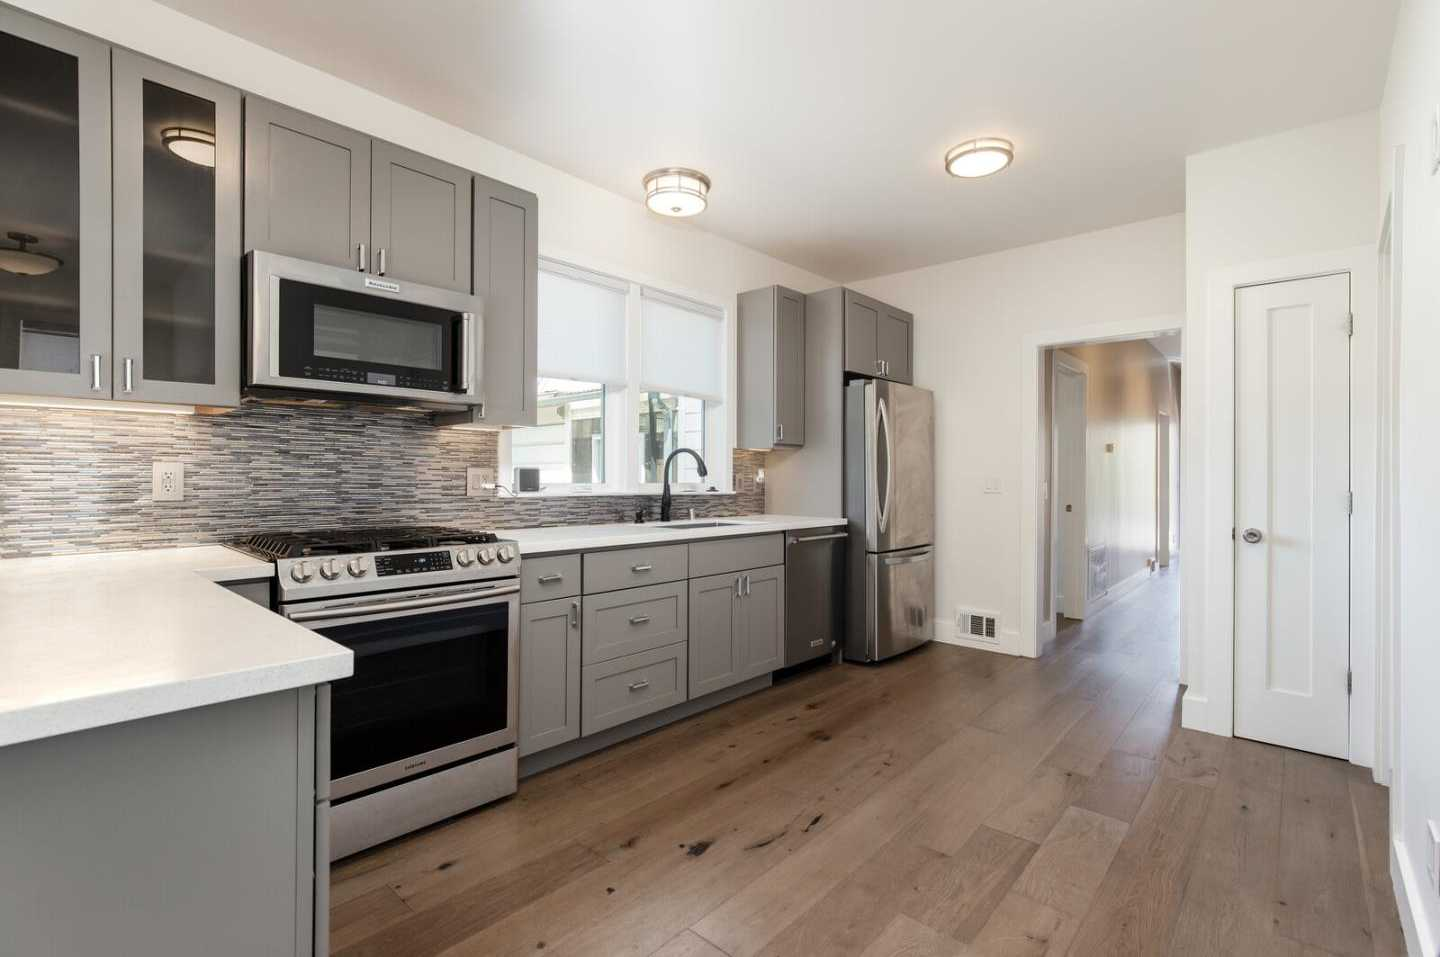 $1,378,600 - 5Br/3Ba -  for Sale in San Francisco